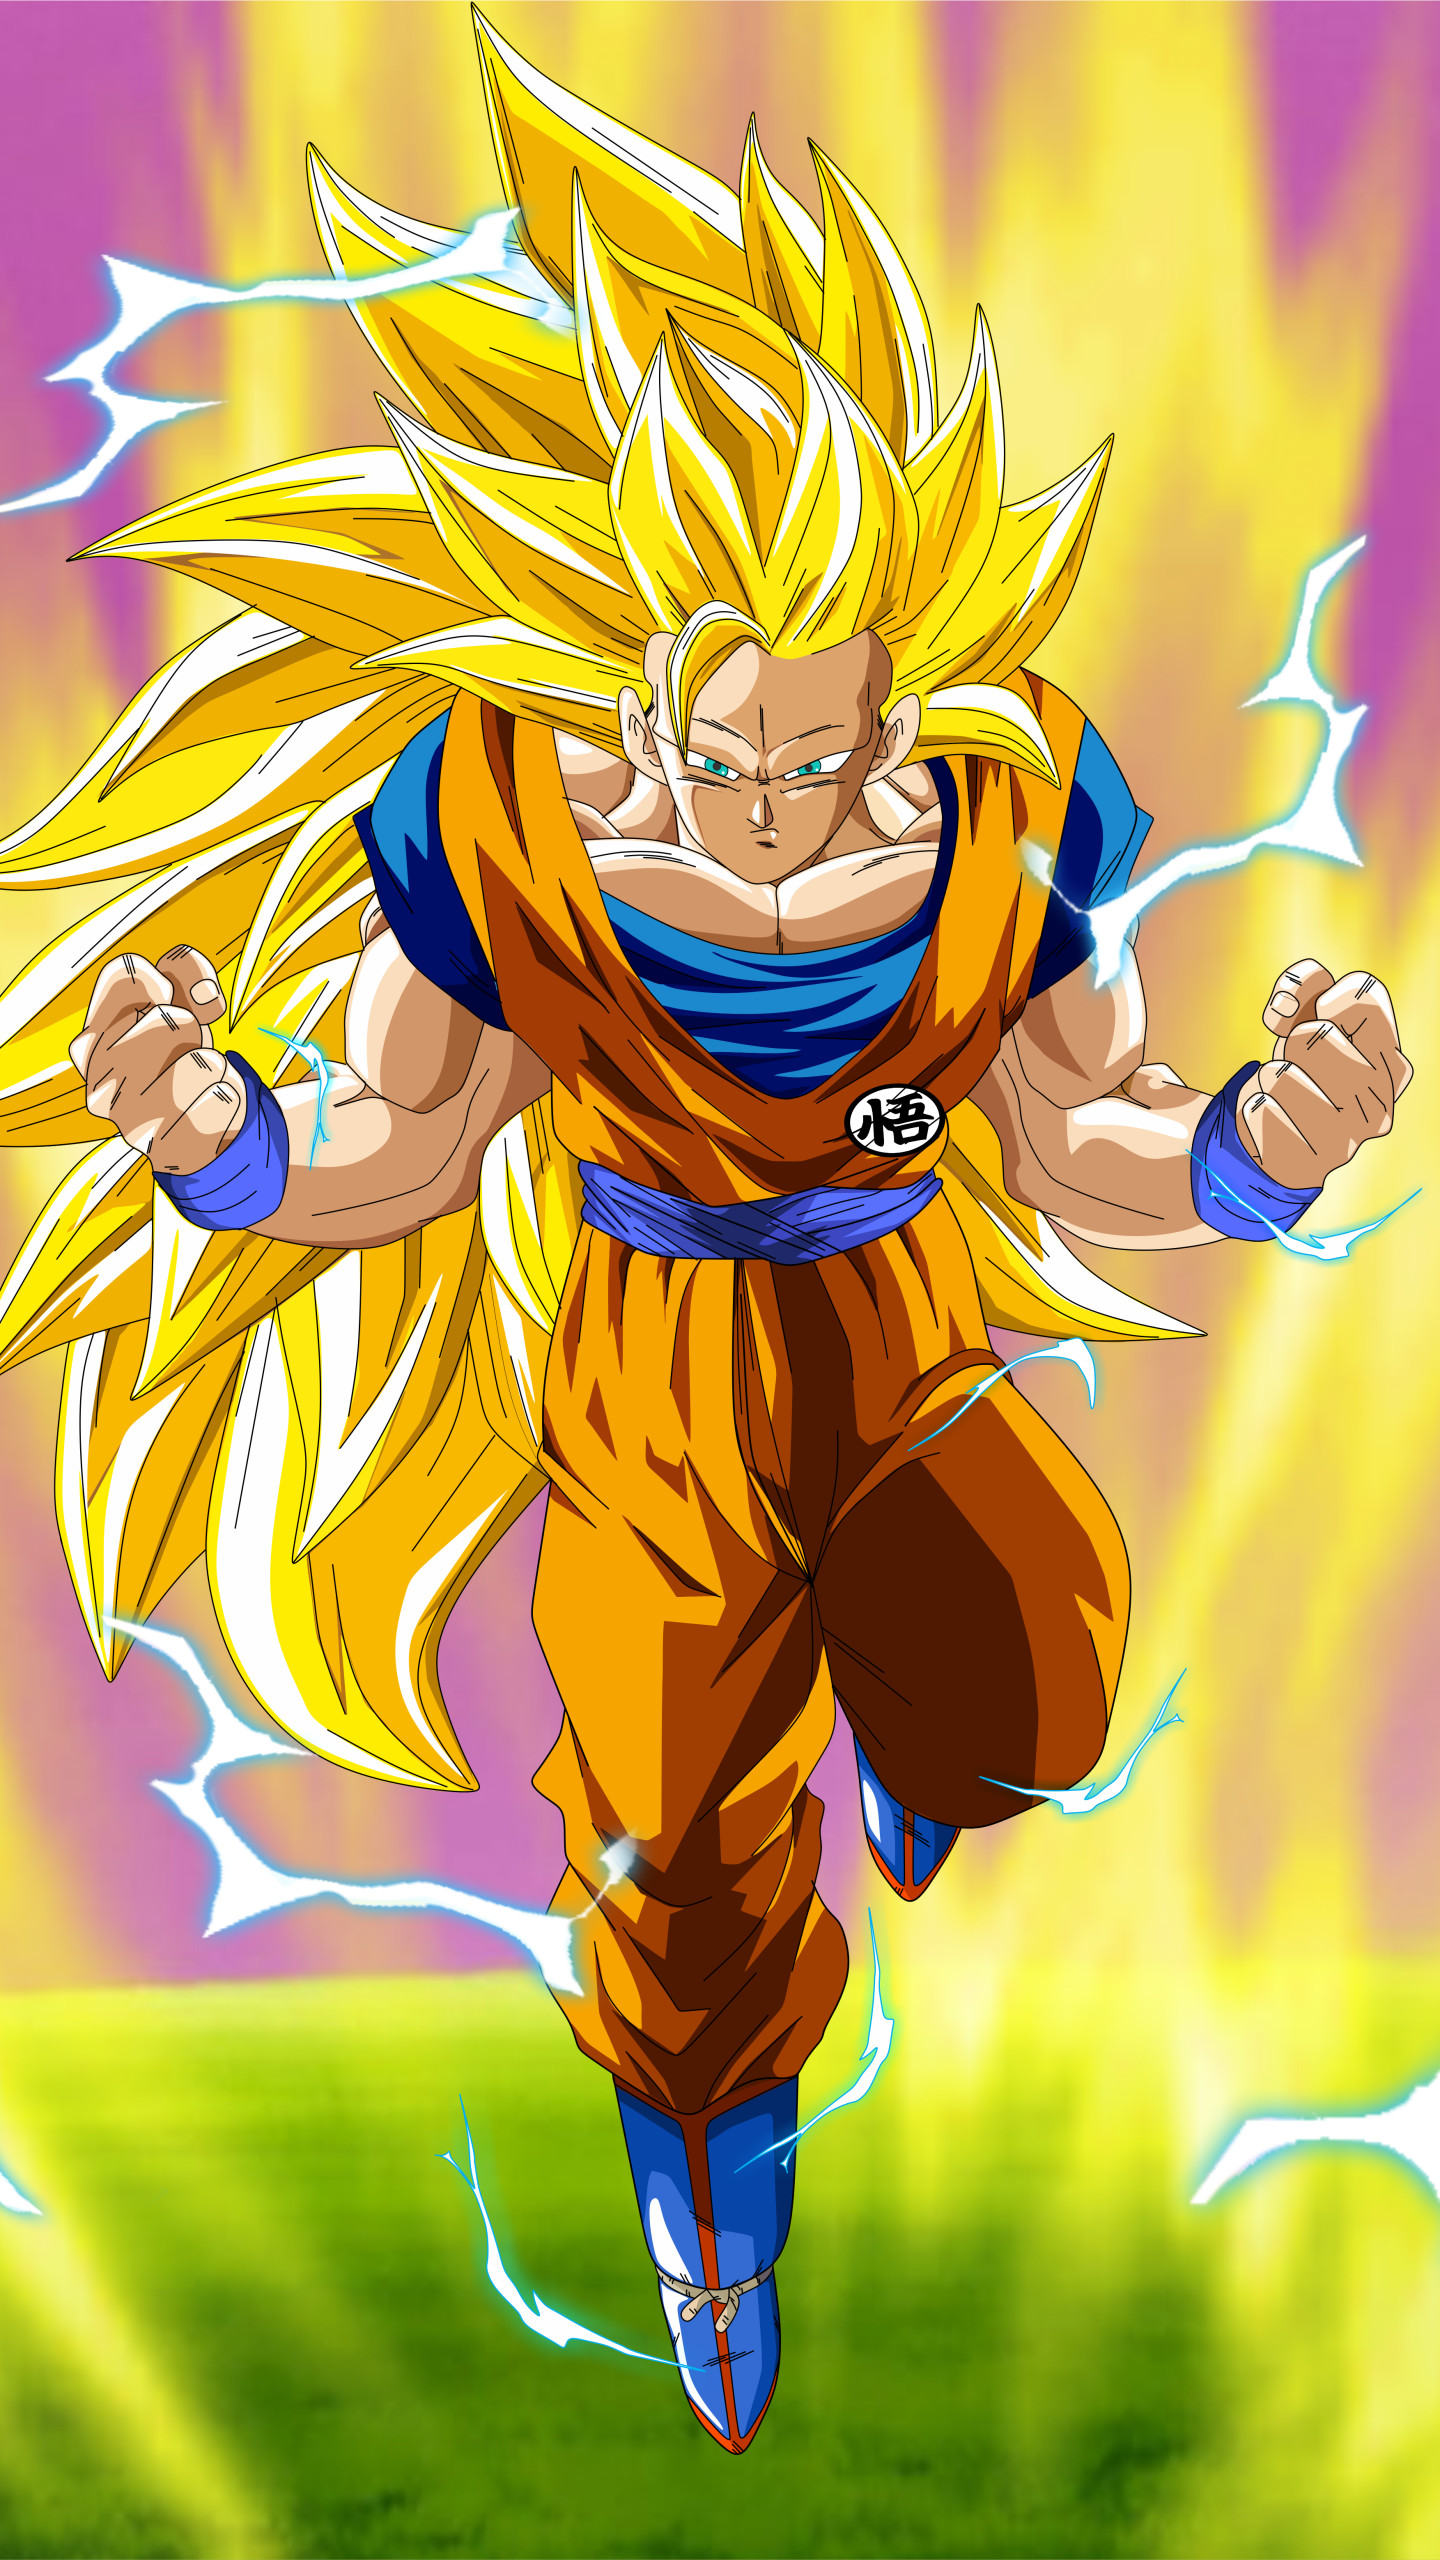 Goku super saiyan 3 wallpapers wallpapertag - Goku 5 super saiyan ...